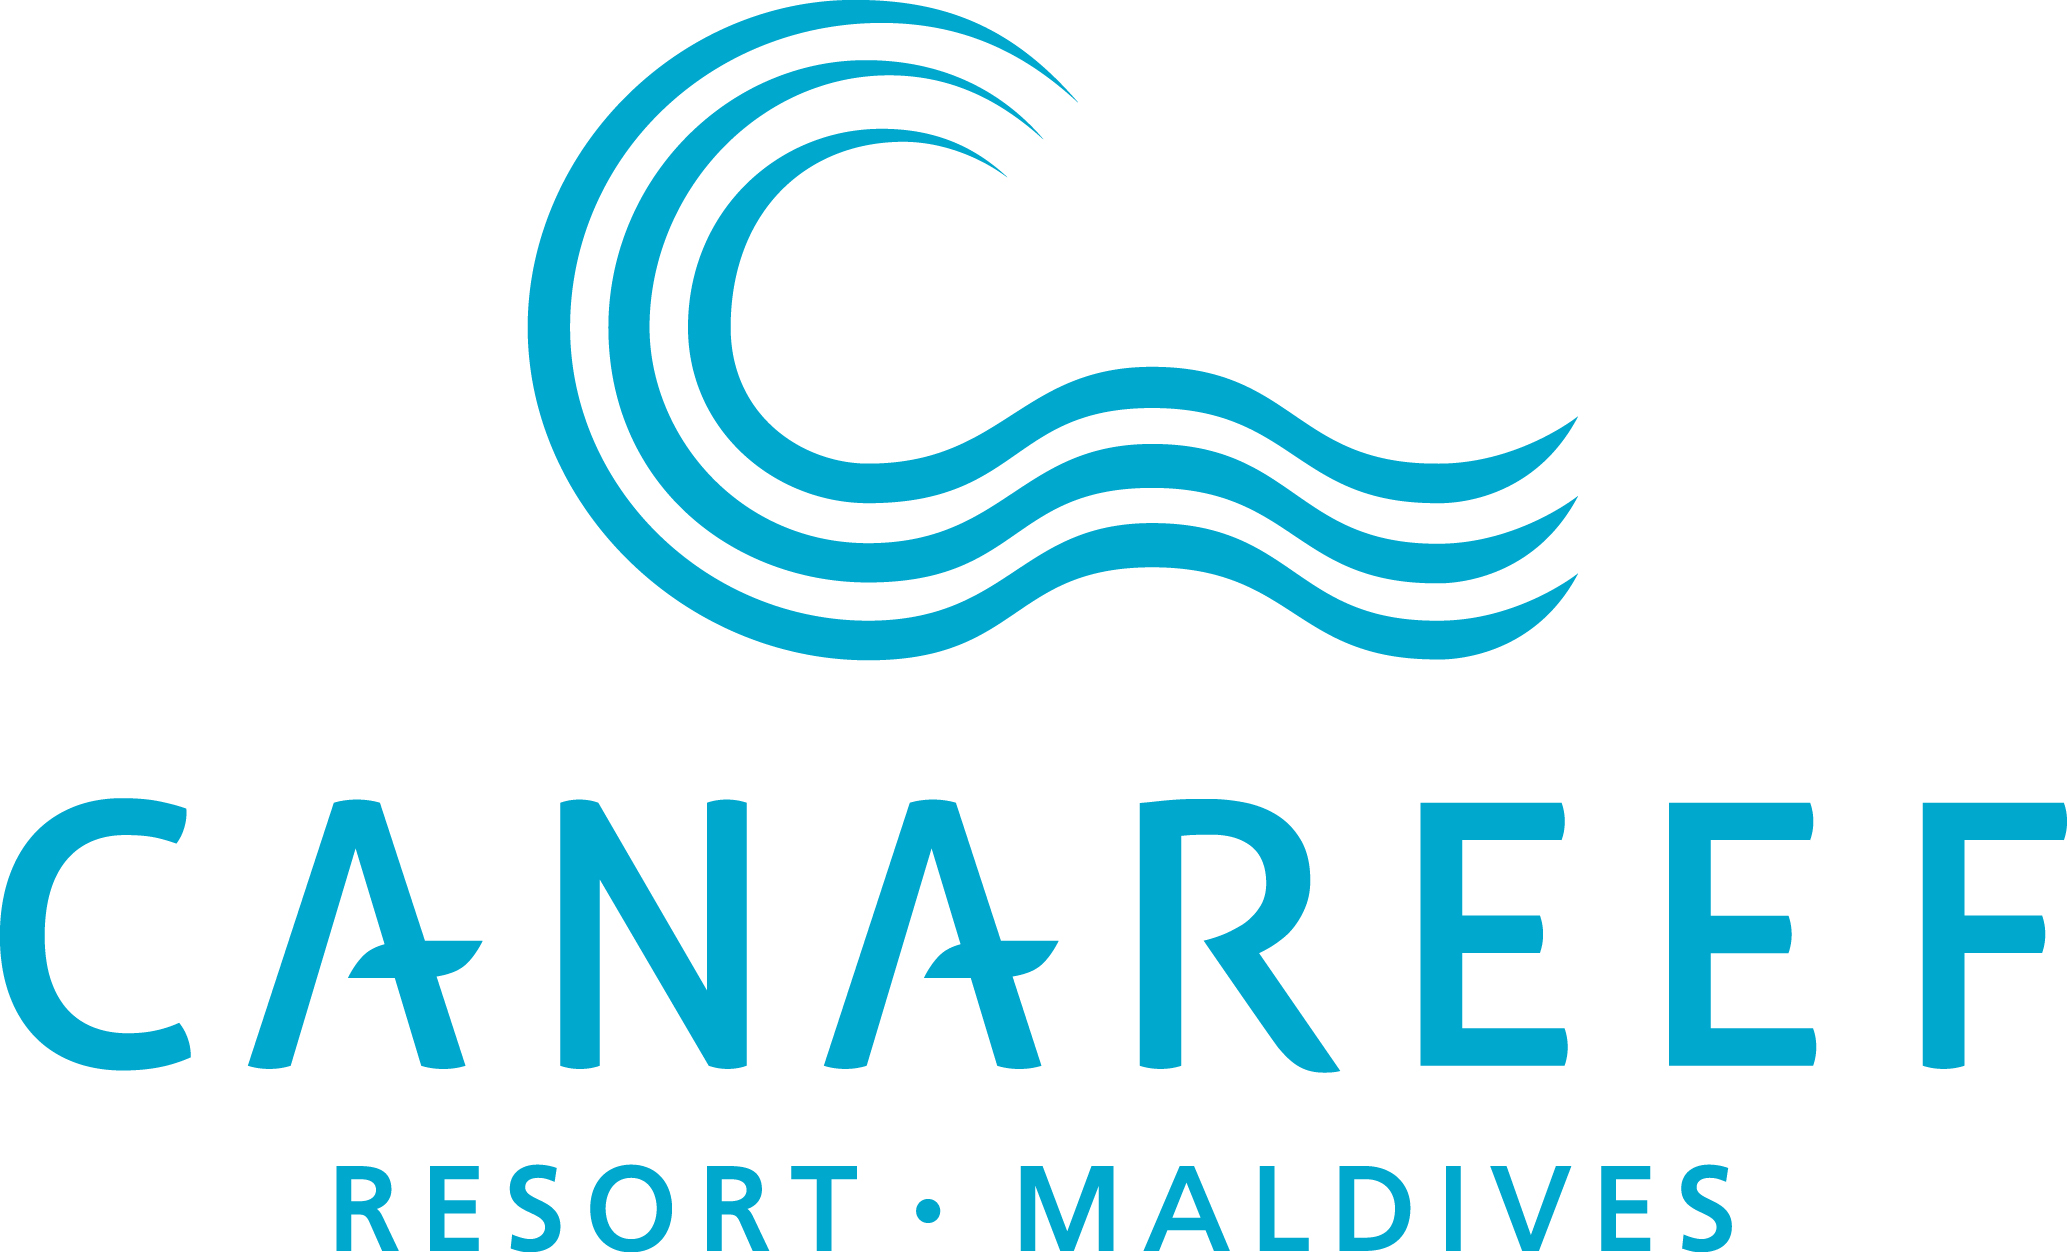 Guest Relations Officer Chinese X02 At Canareef Resort